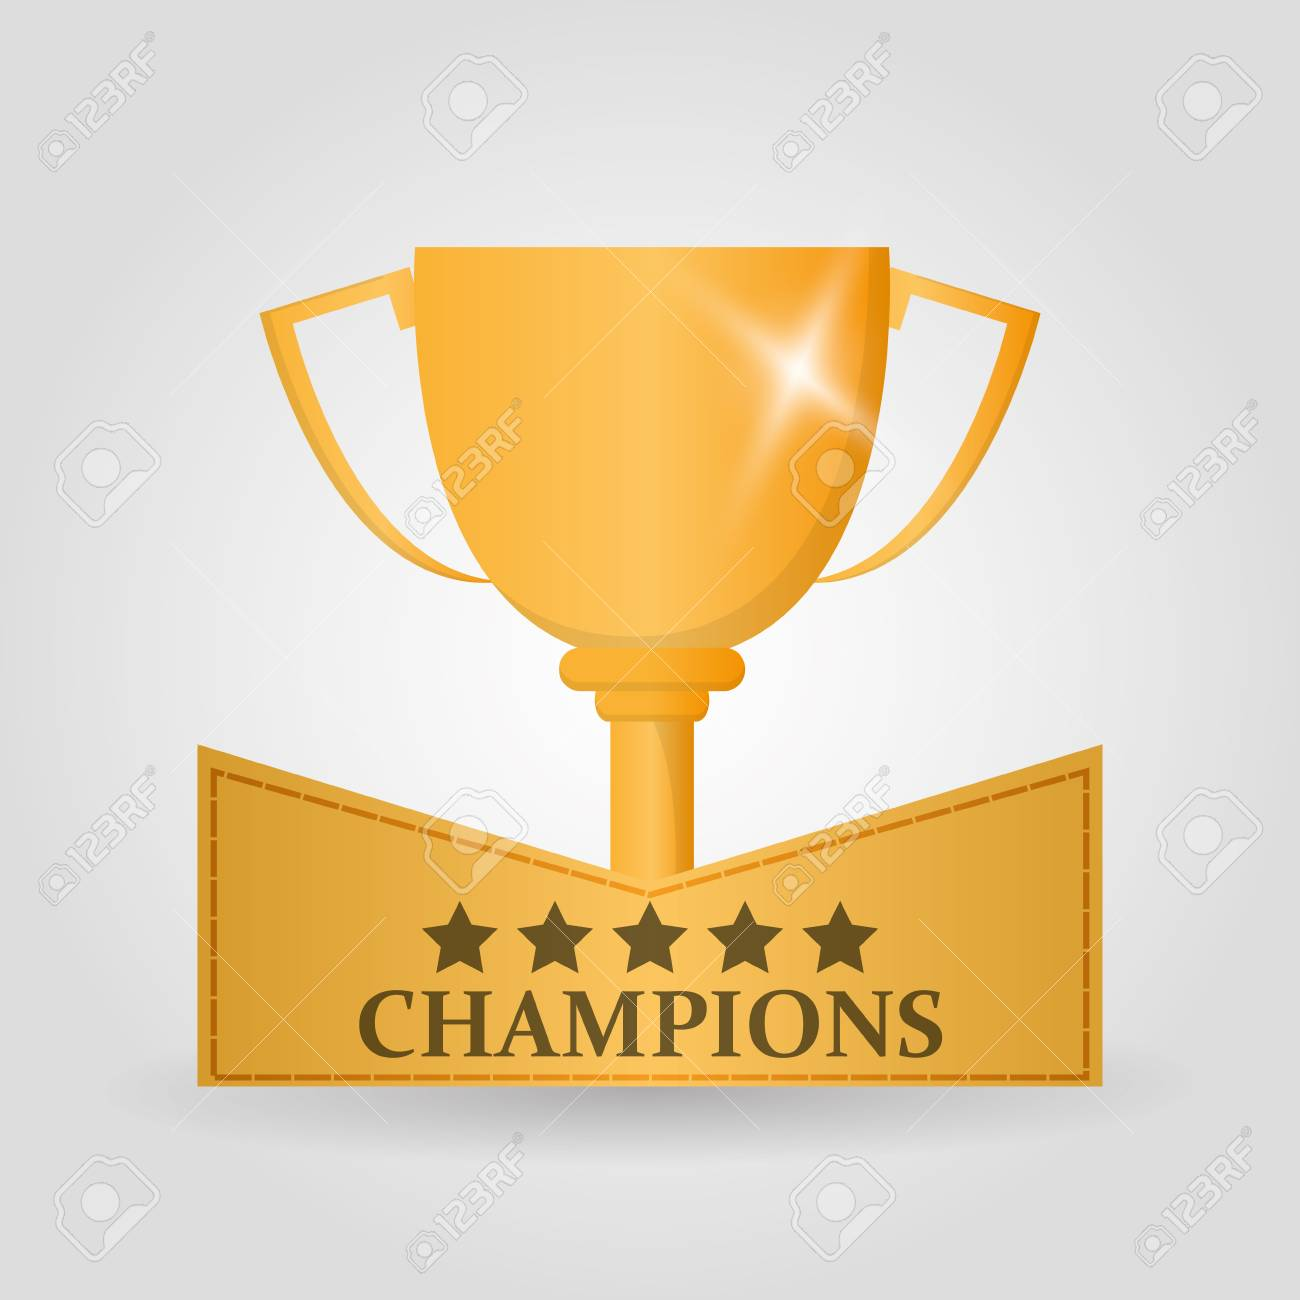 Gold Trophy Cup Icon Champions League Winner And Success Theme Colorful Design Vector